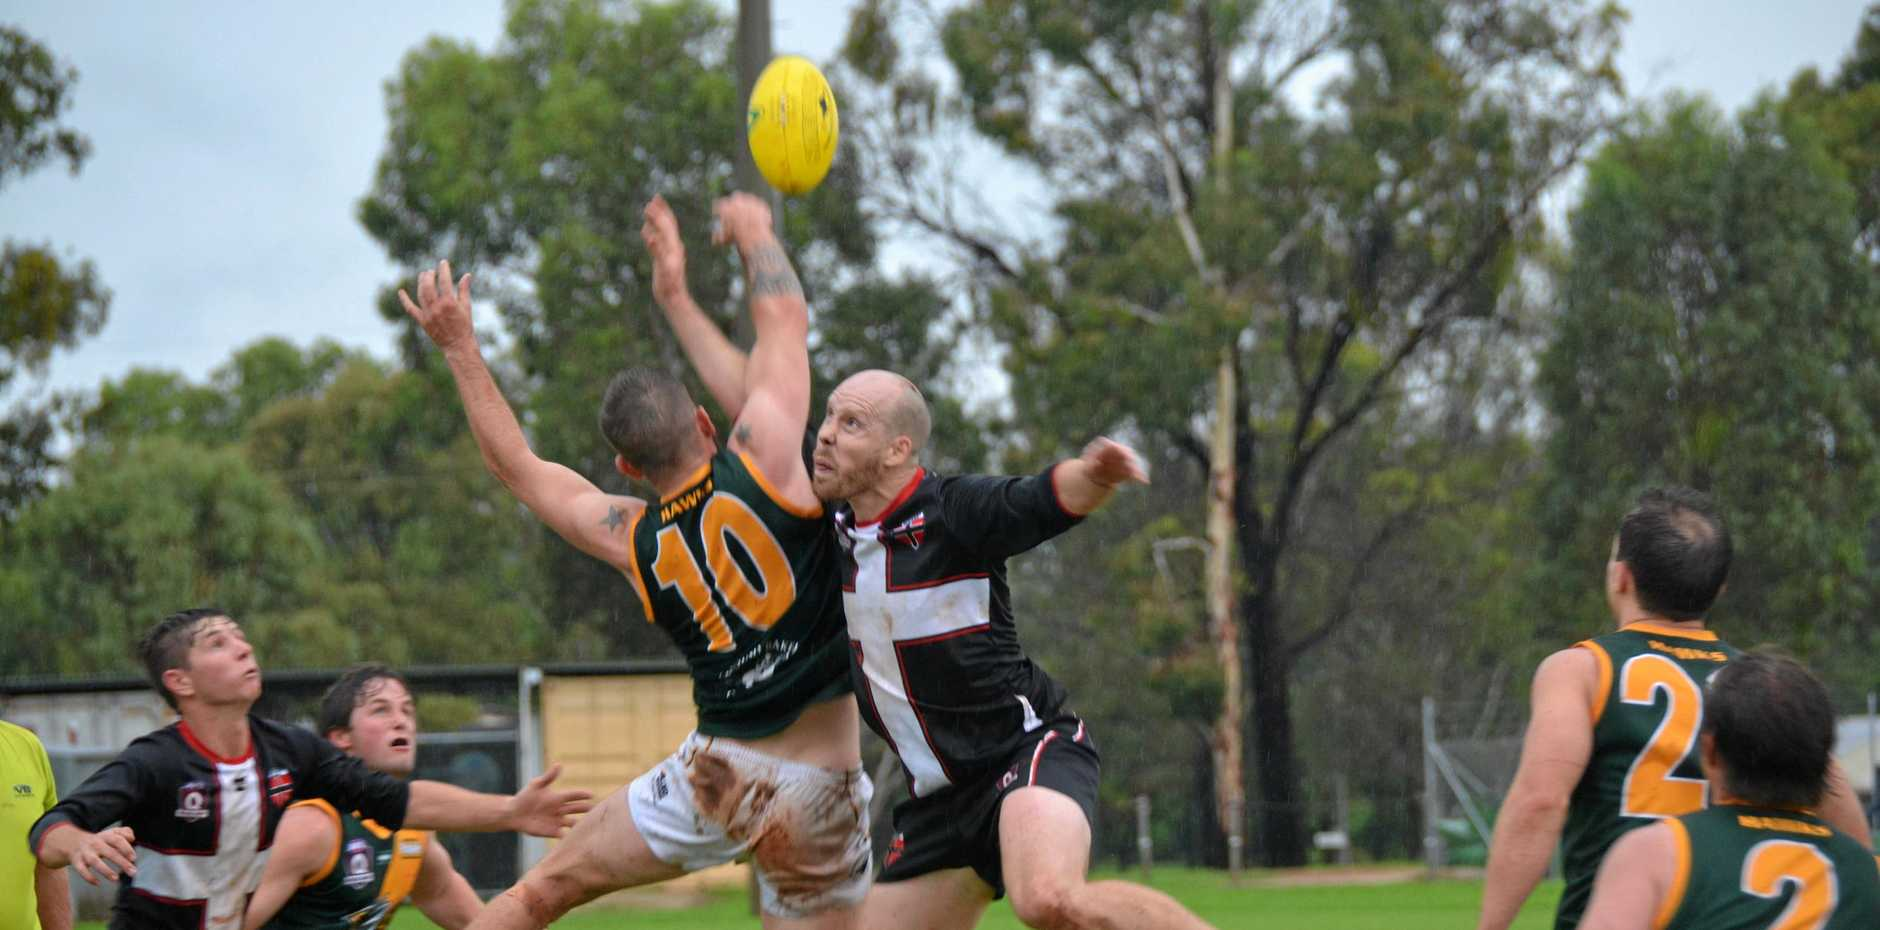 SEASON OPENER: The South Burnett Saints against the Goondiwindi Hawks in round one of the AFL Darling Down 2019 season.